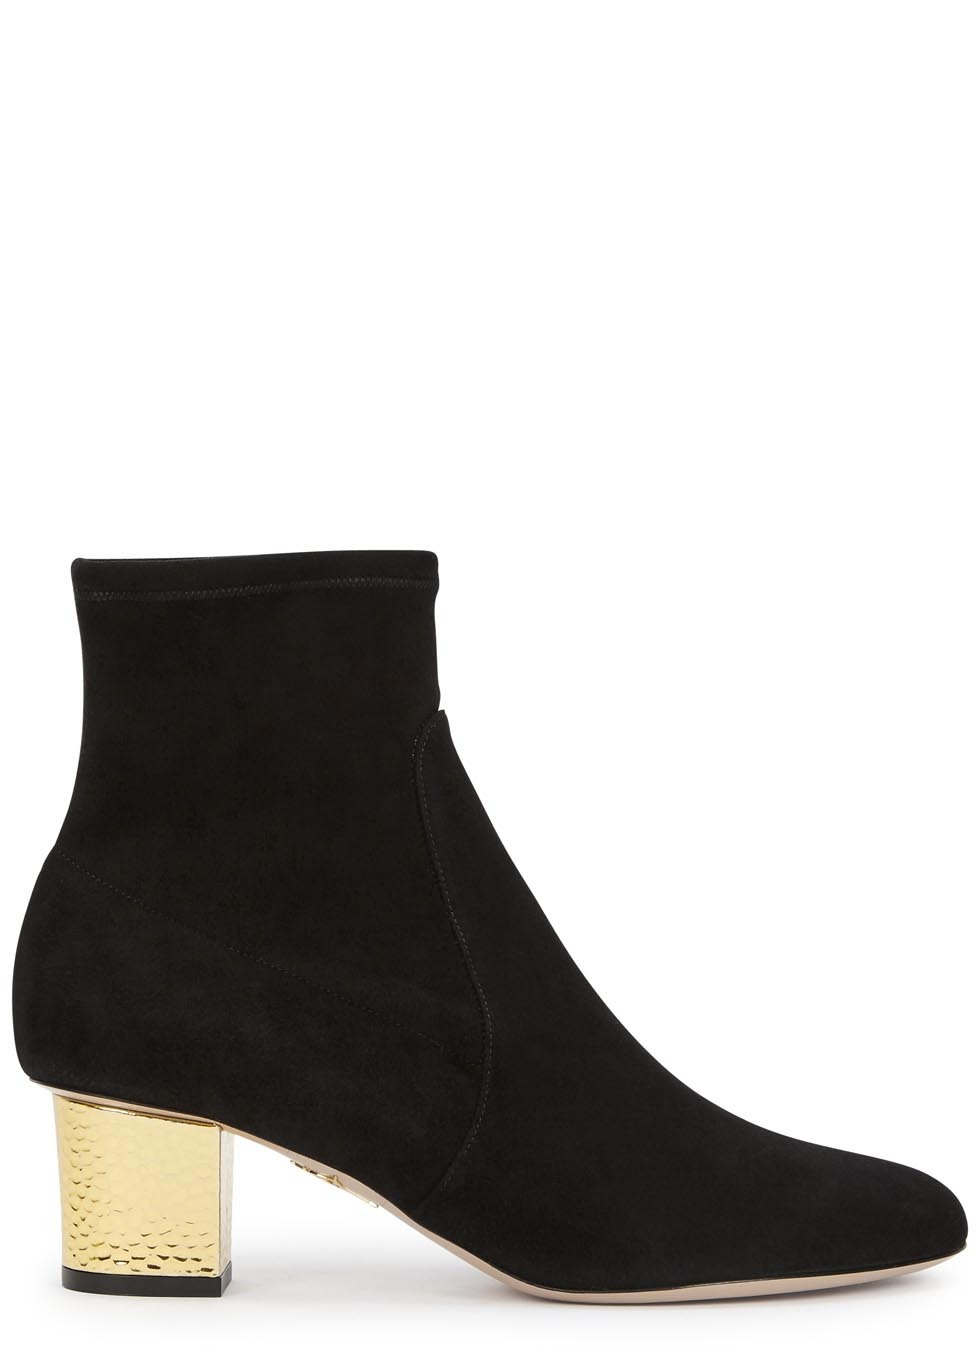 Winnie Black Stretch Suede Ankle Boots - secondary colour: gold; predominant colour: black; occasions: casual, creative work; material: suede; heel height: mid; heel: block; toe: round toe; boot length: ankle boot; style: standard; finish: plain; pattern: plain; season: a/w 2015; wardrobe: basic